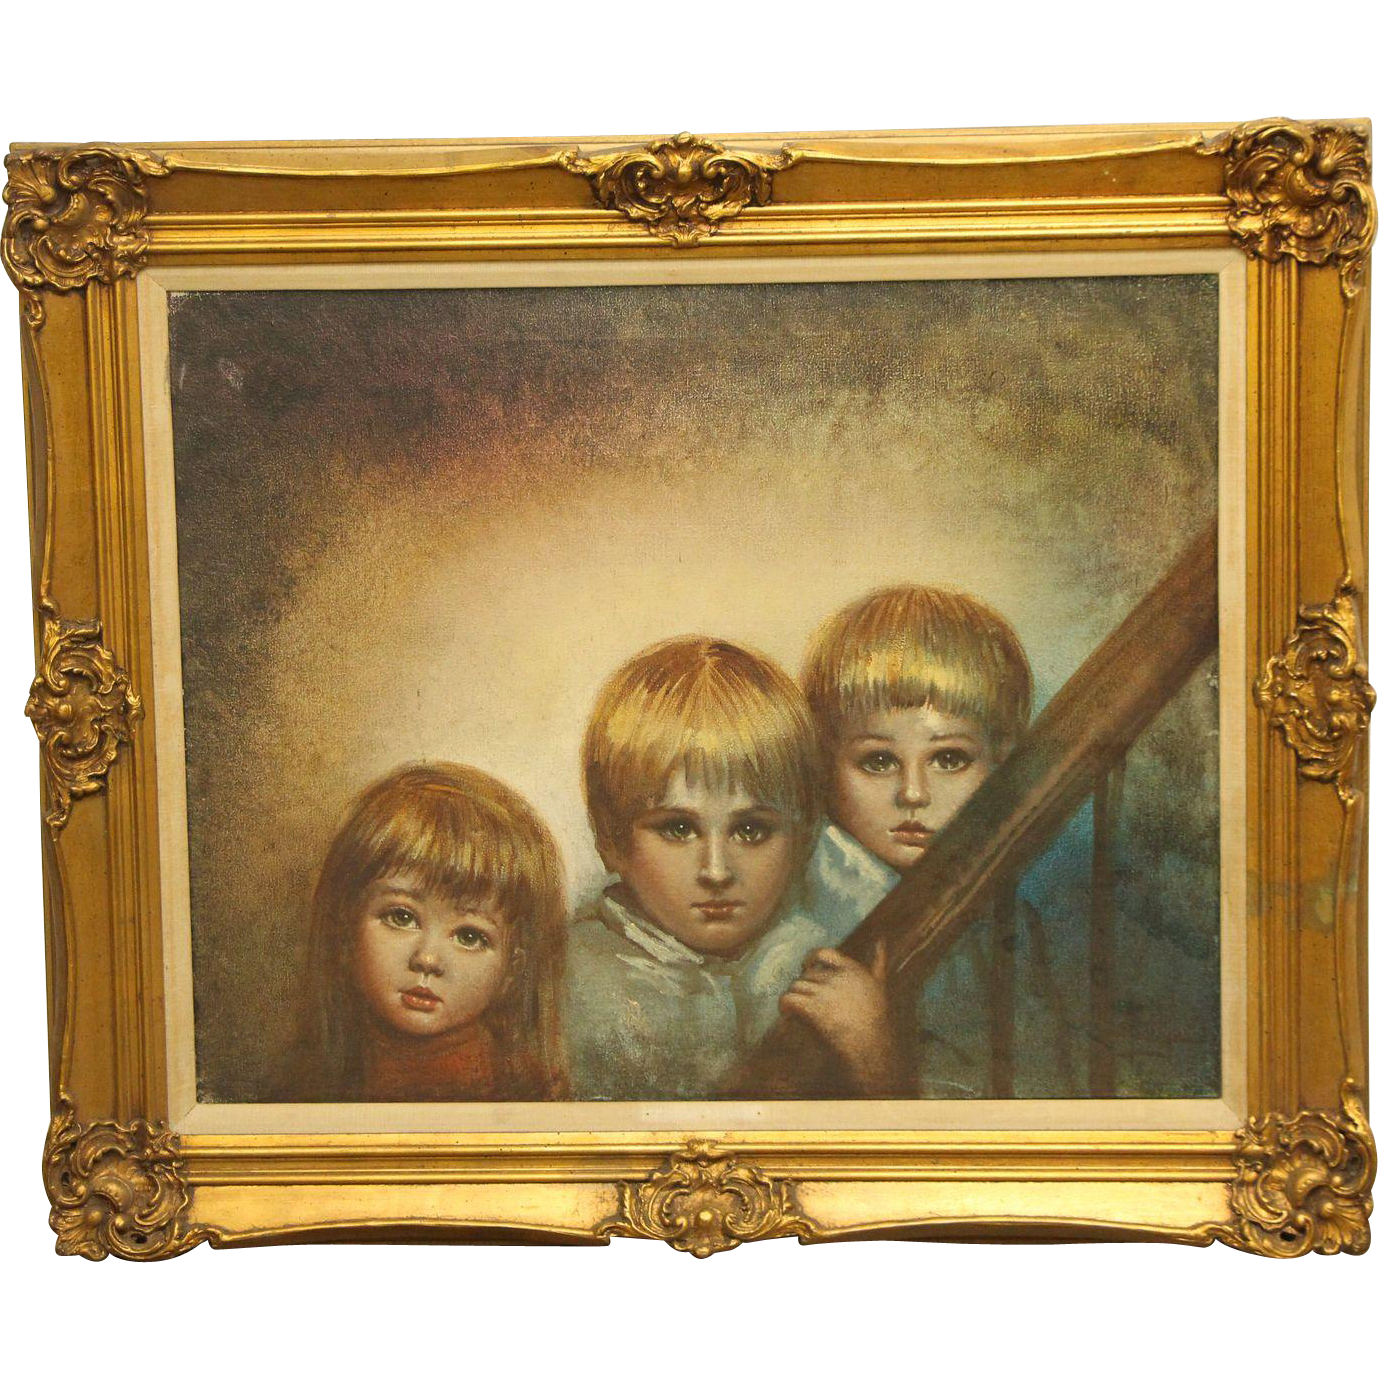 Ornately framed portrait of children